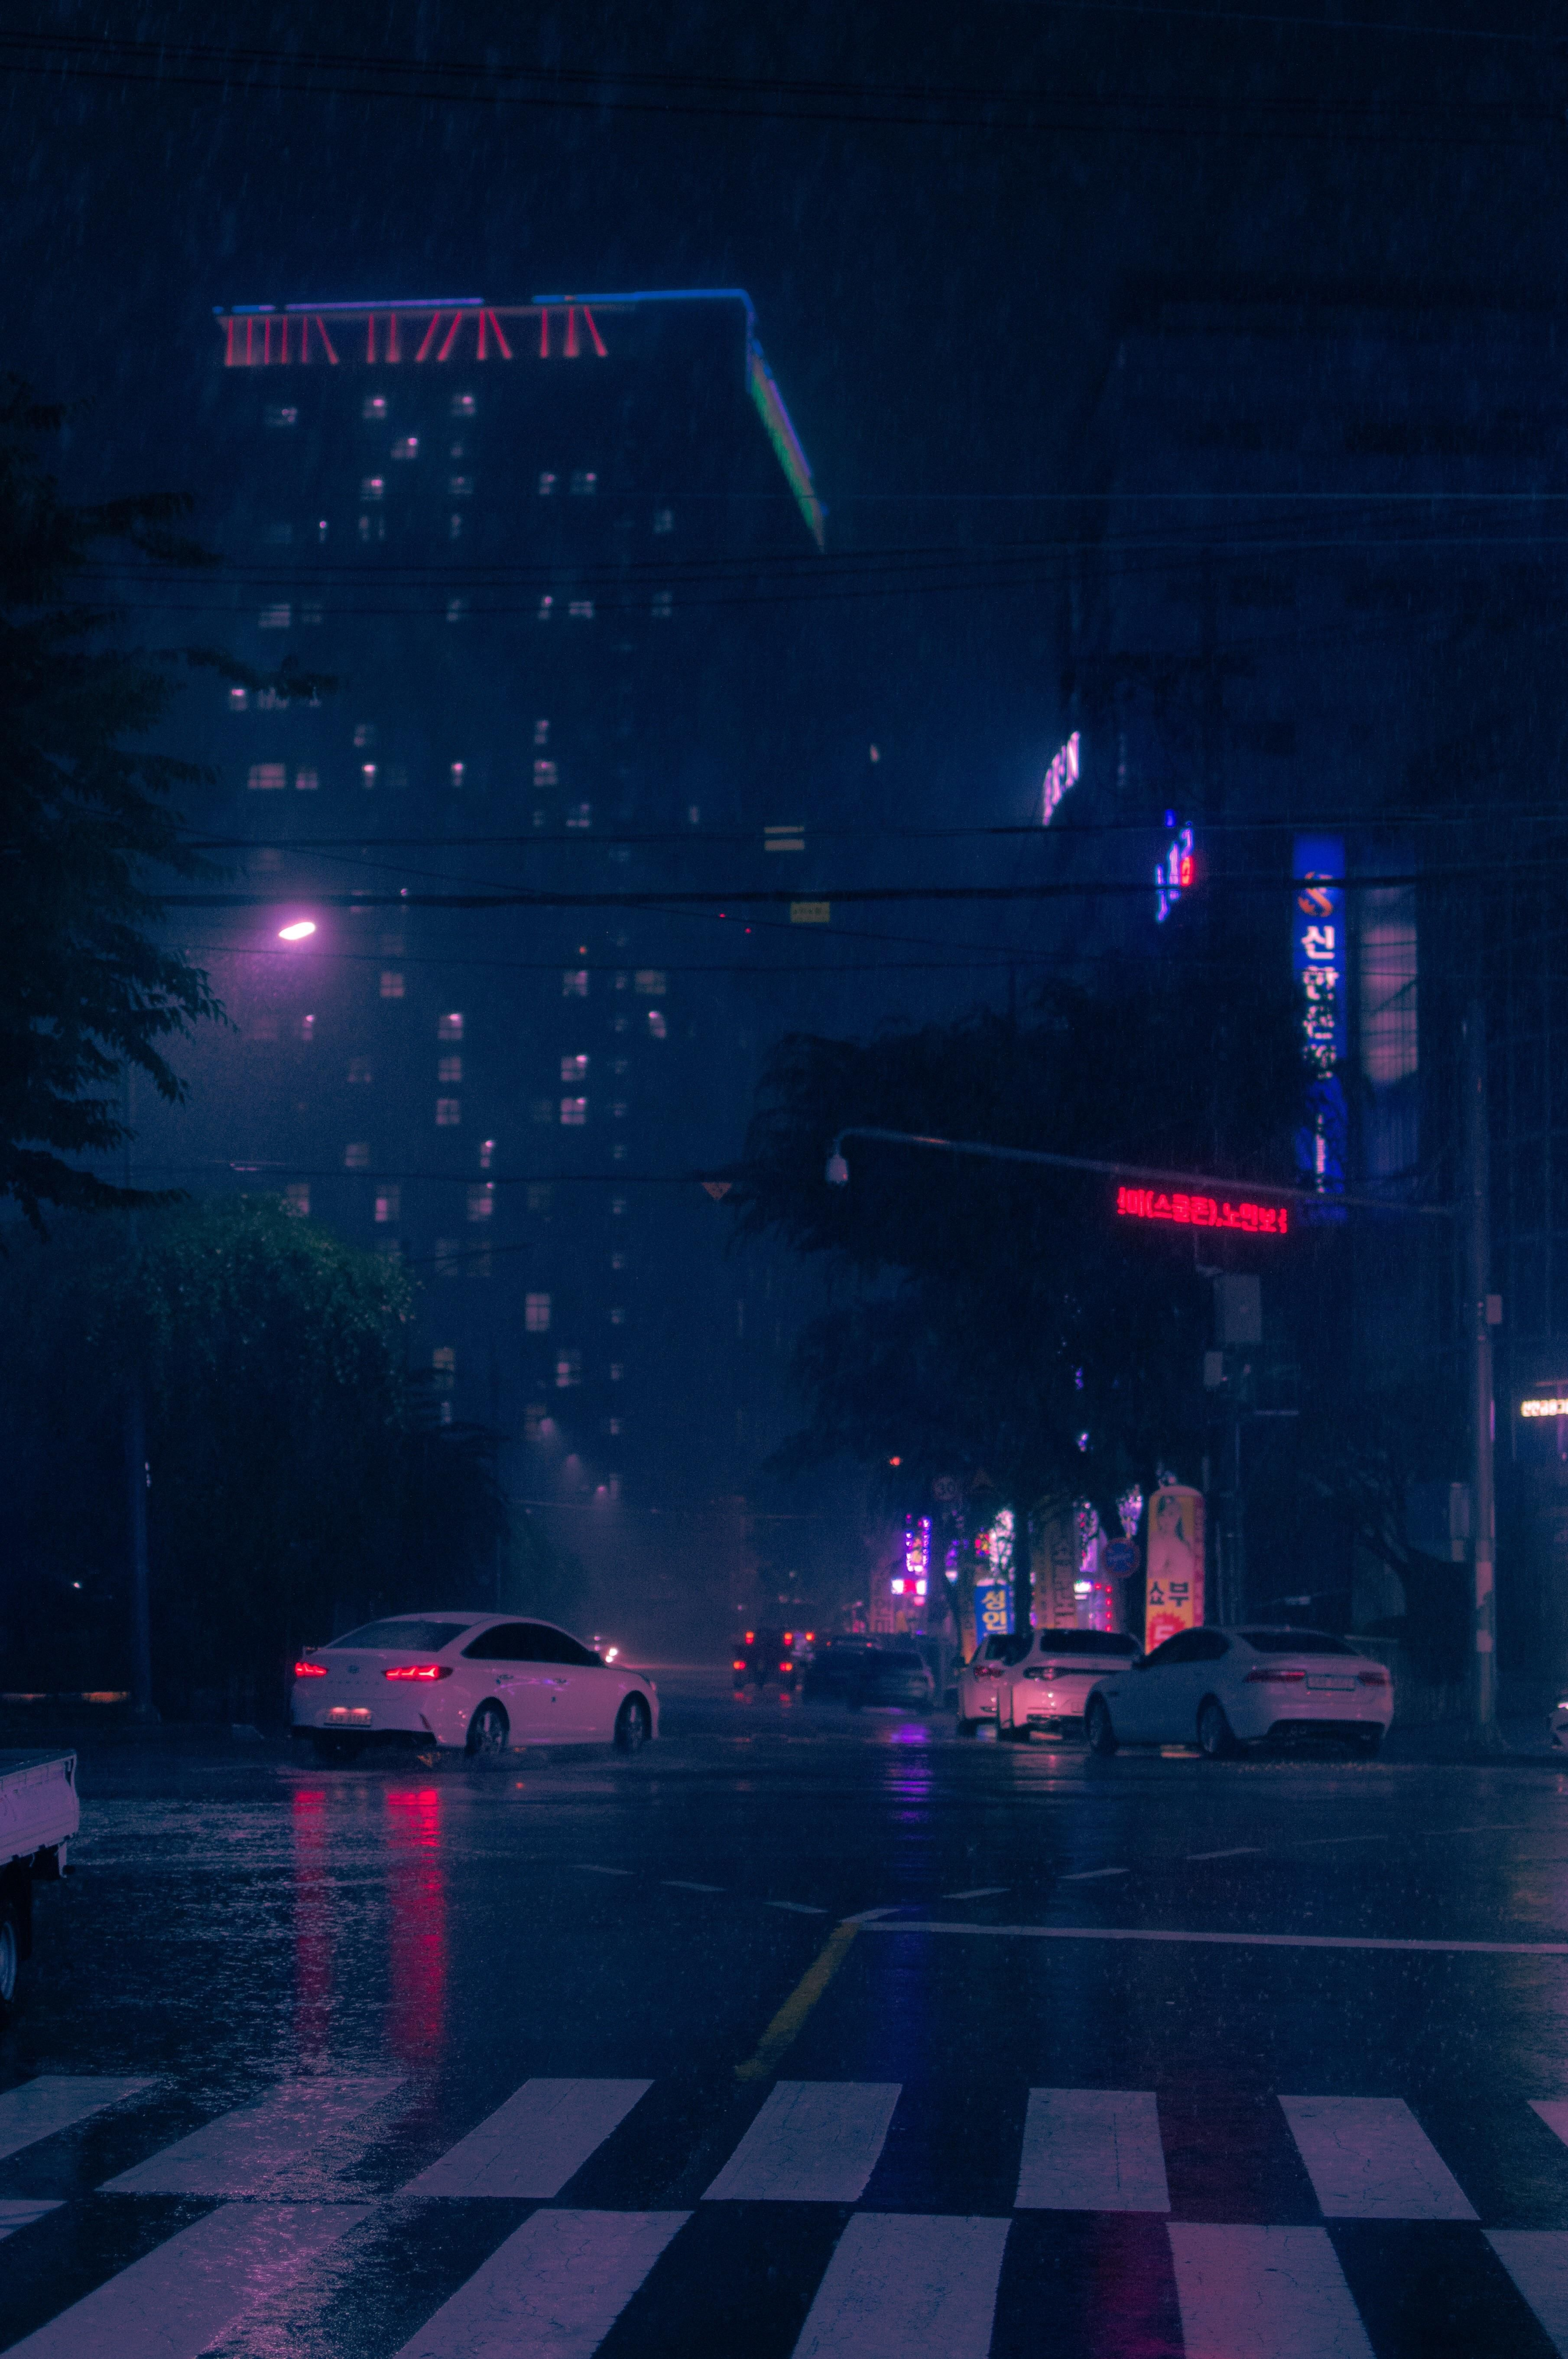 Outrun Subreddits Curated By U Inkorp Dark City Anime Scenery Aesthetic Backgrounds